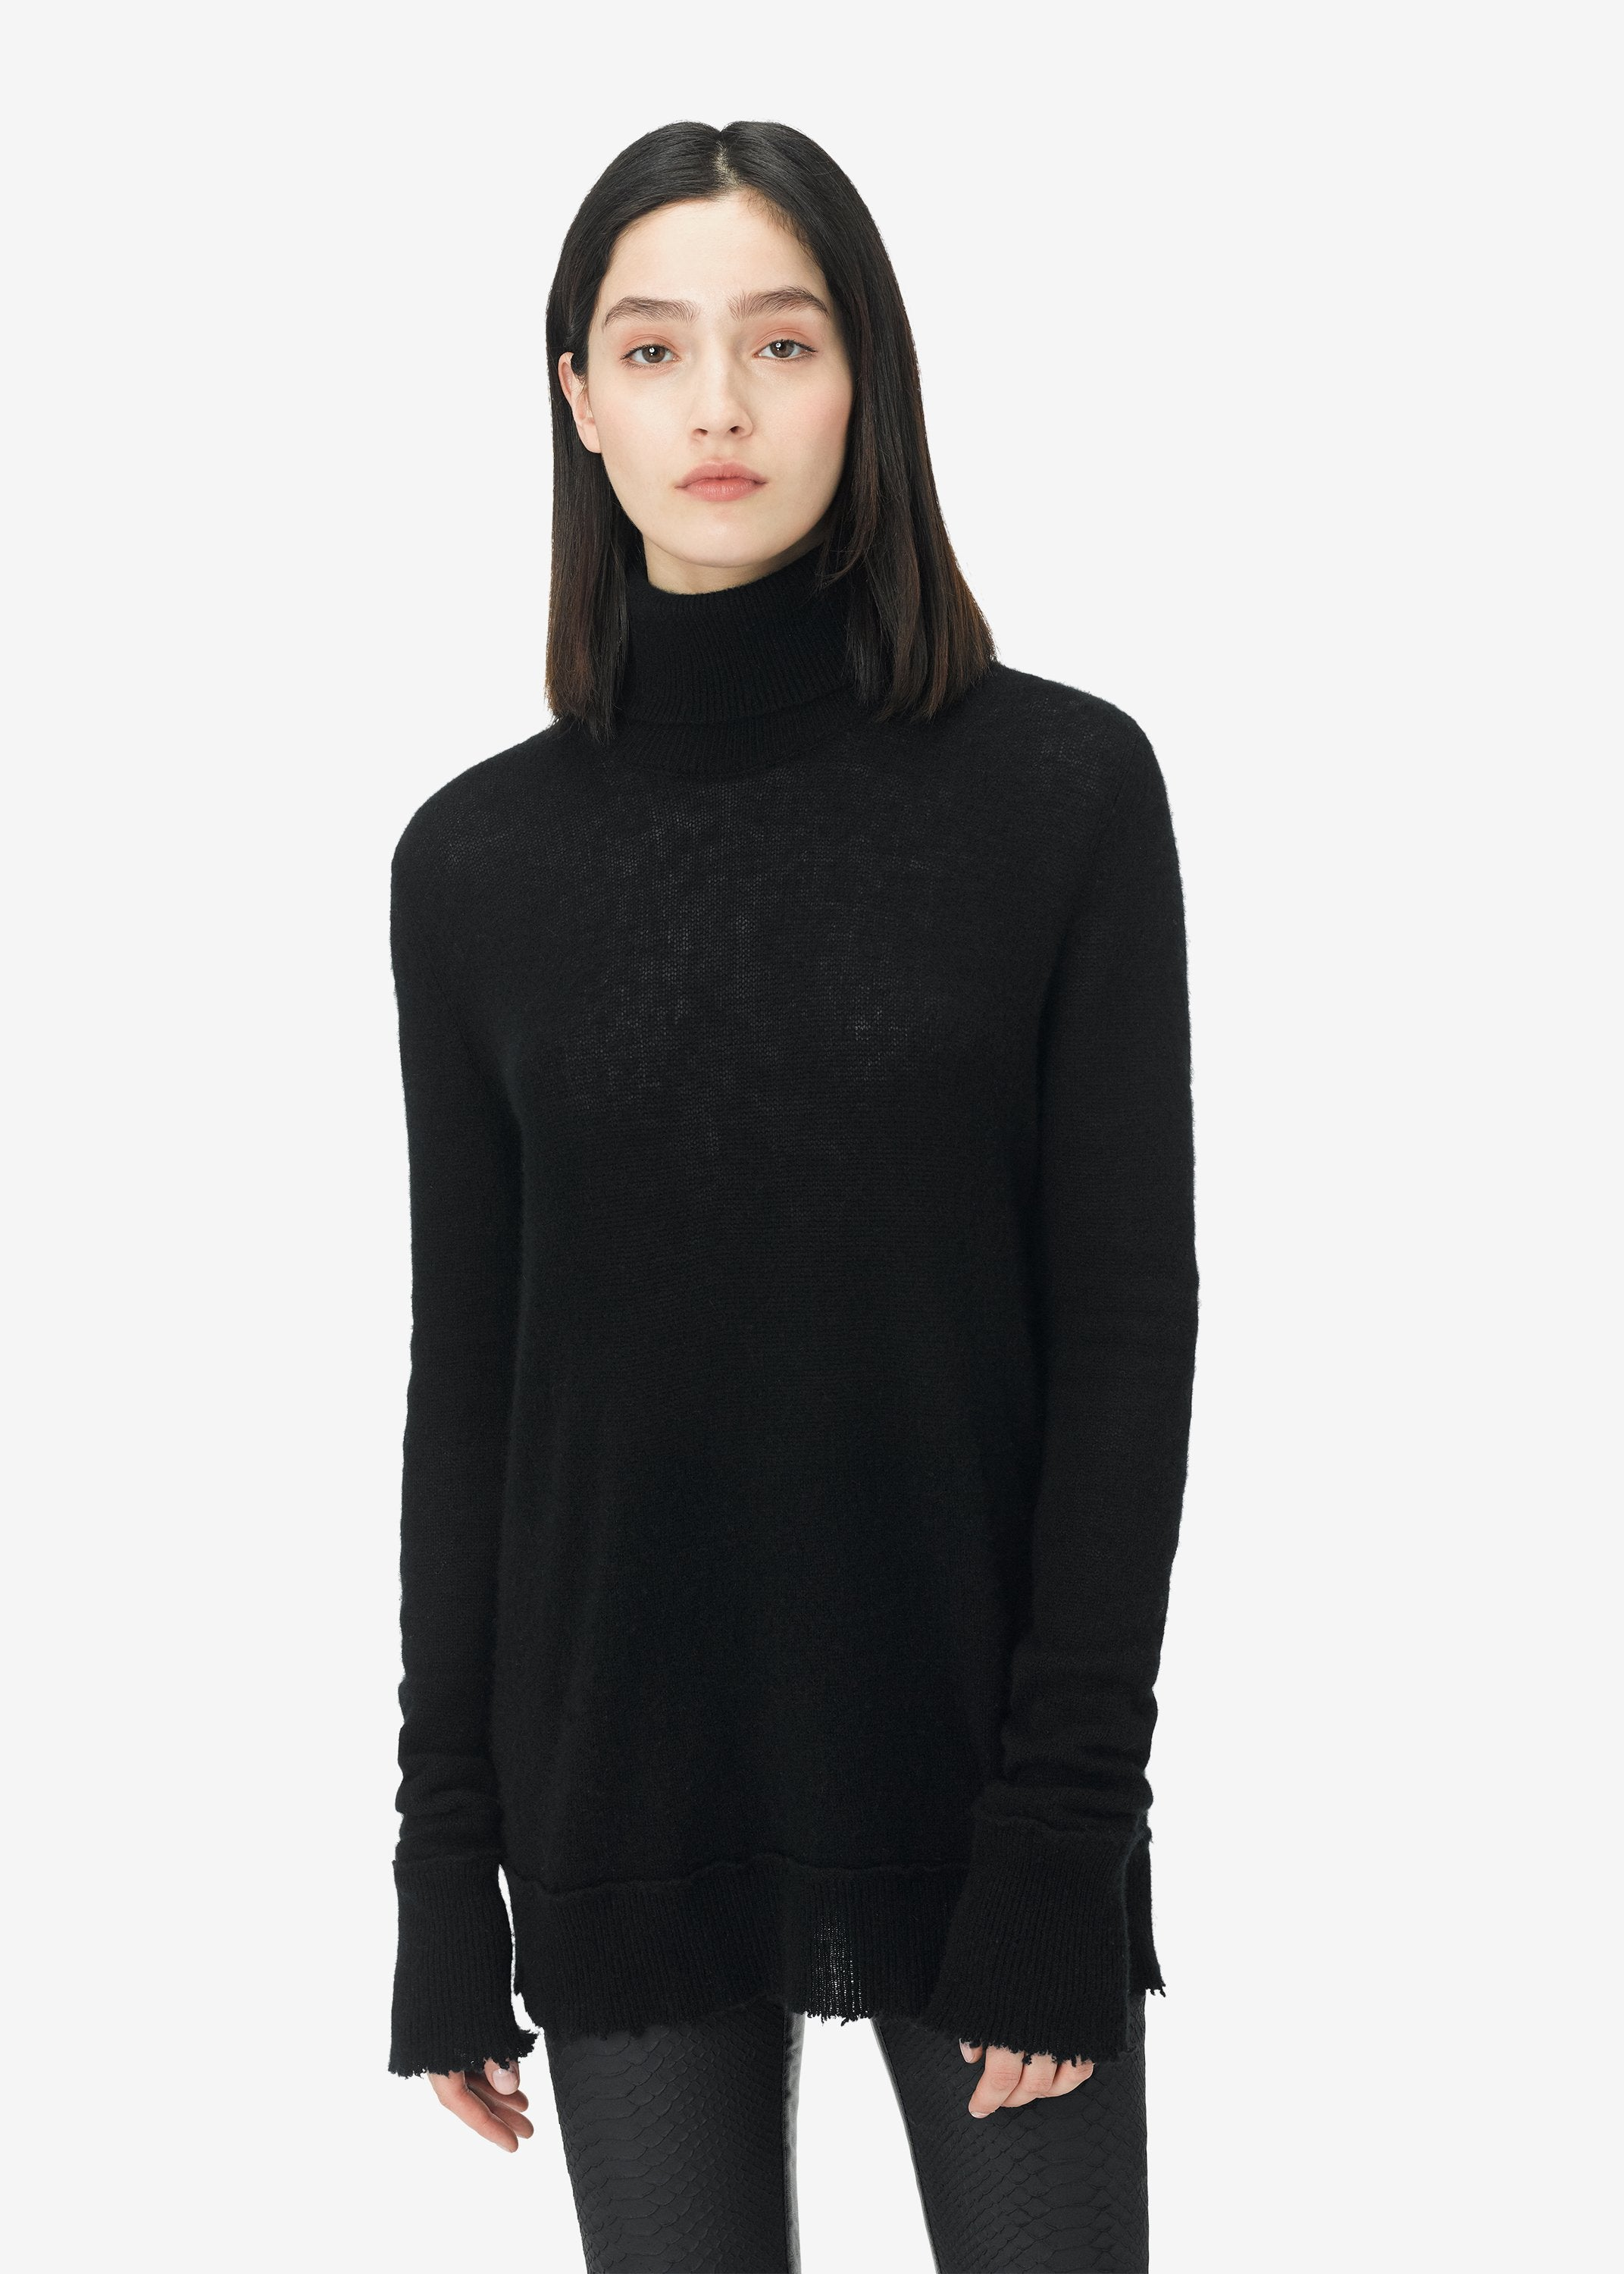 turtleneck-knit-black-image-1